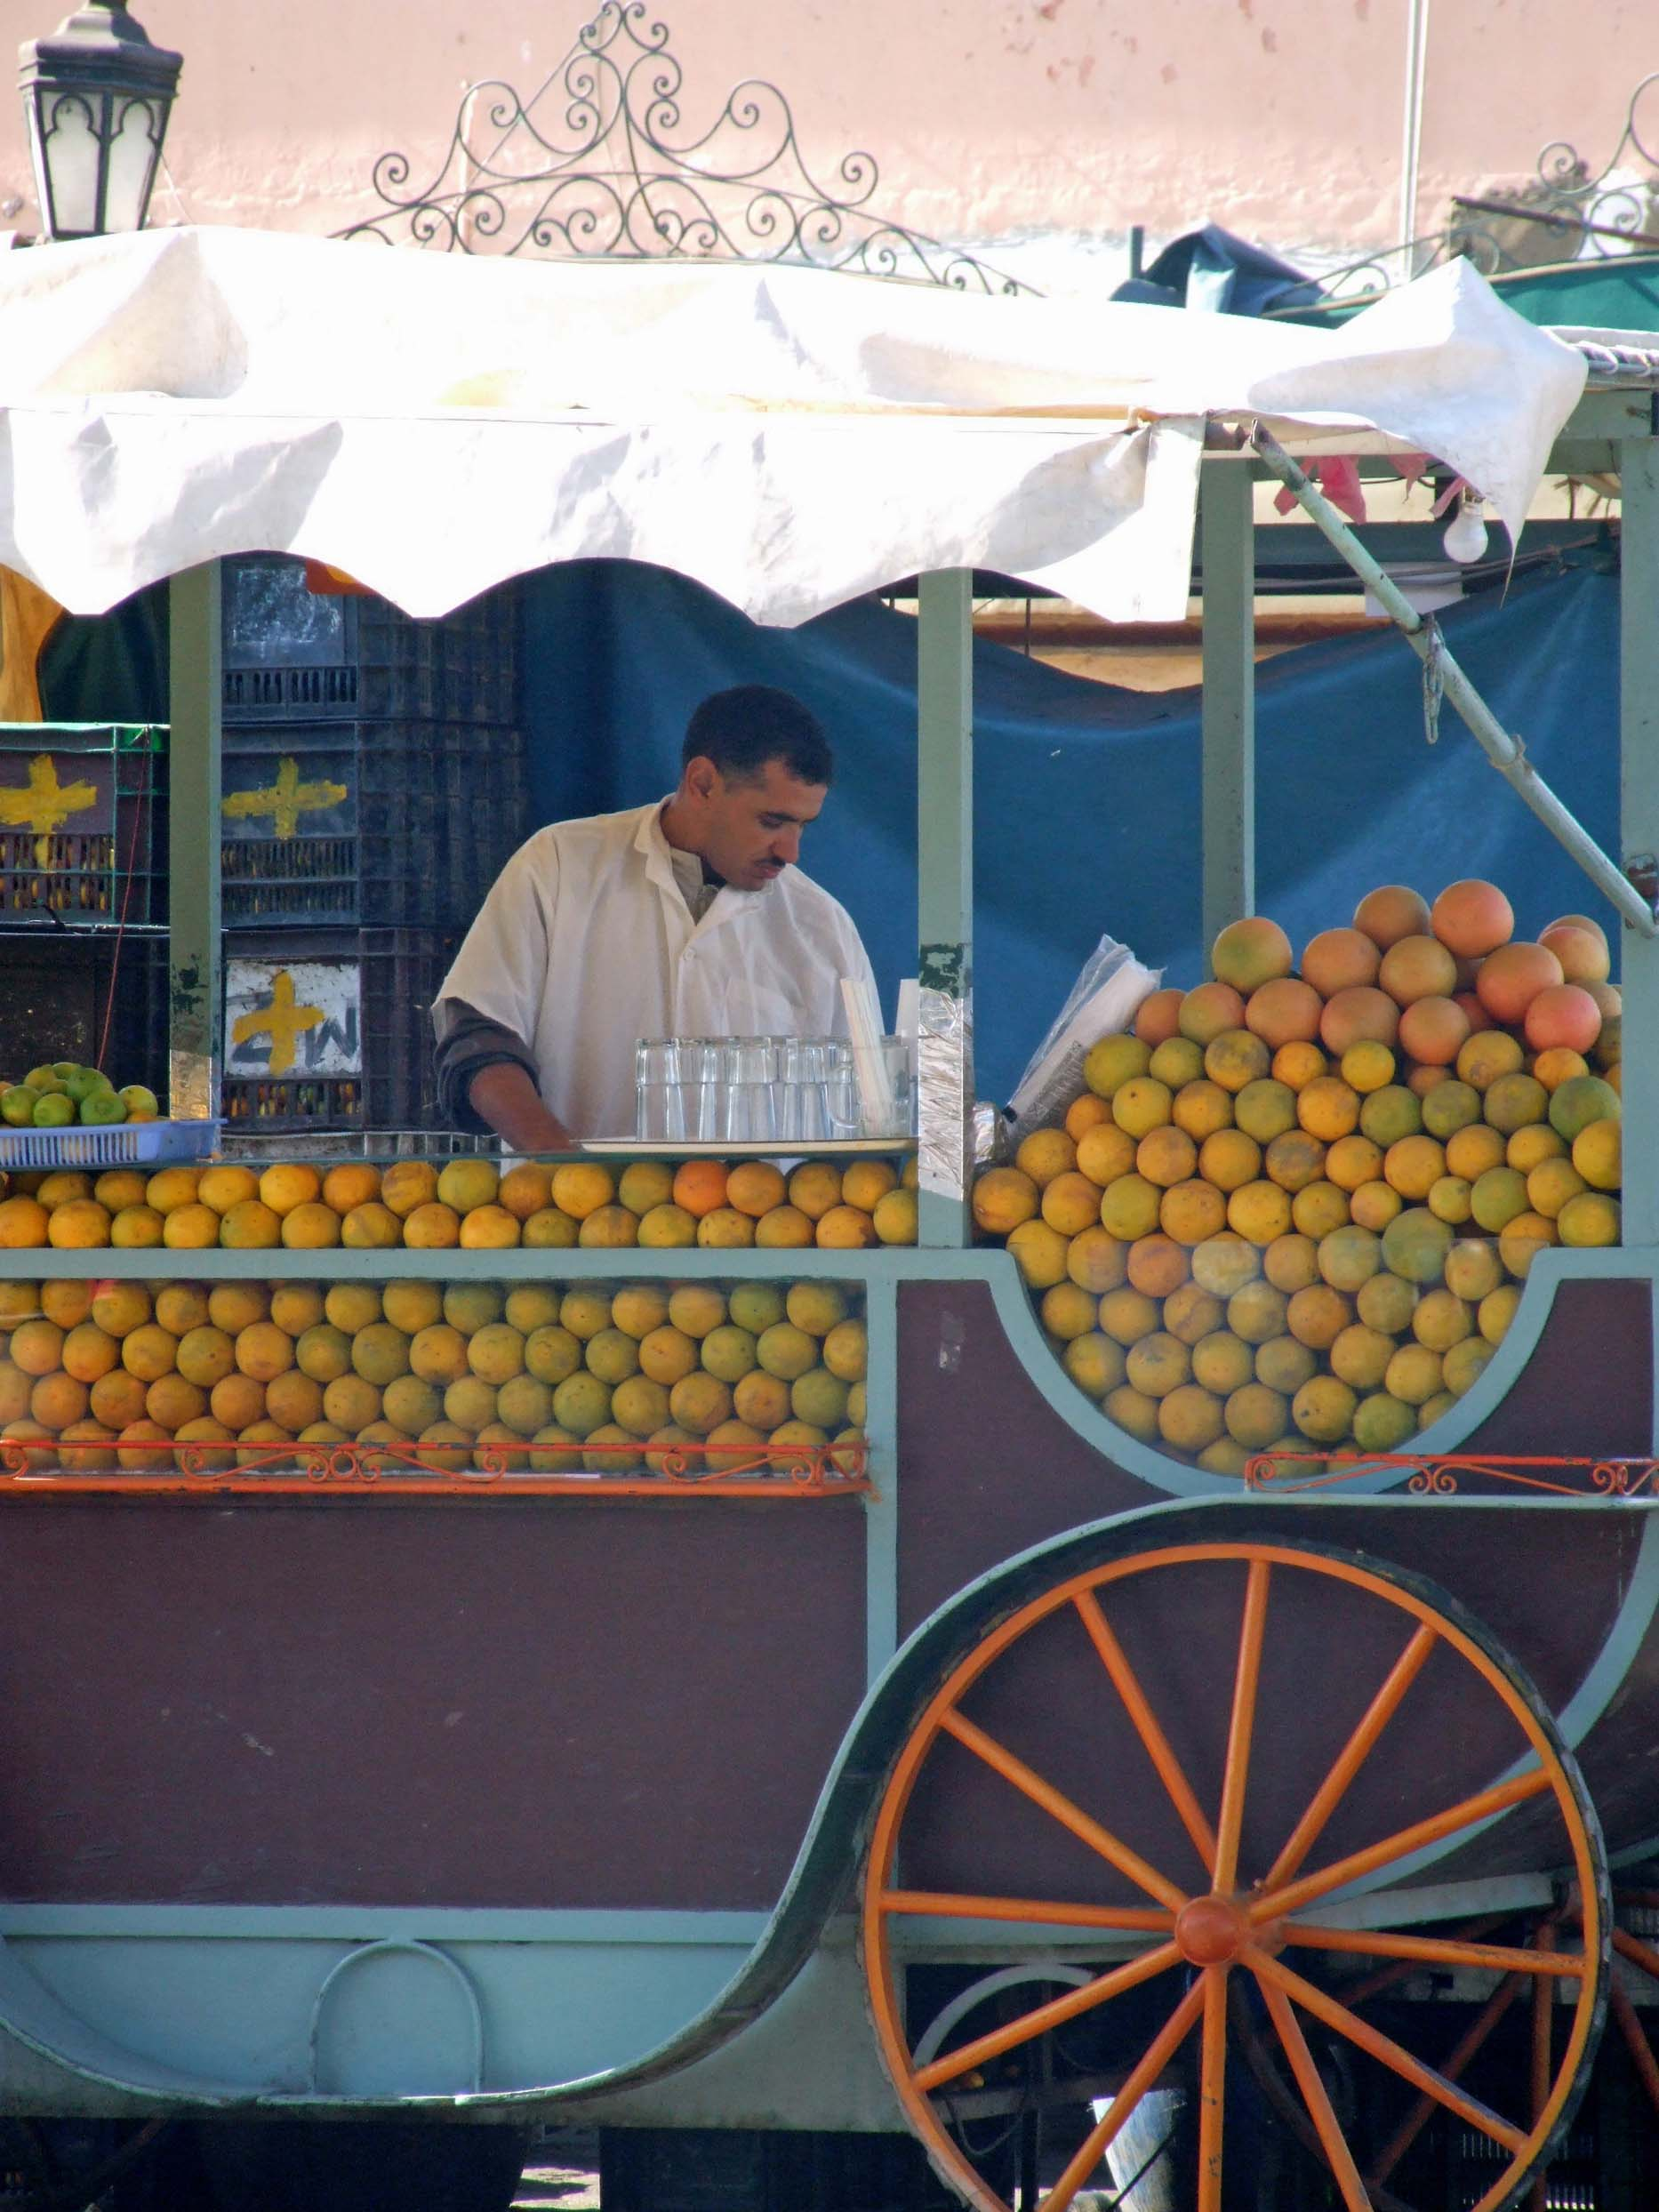 Stall with piles of oranges